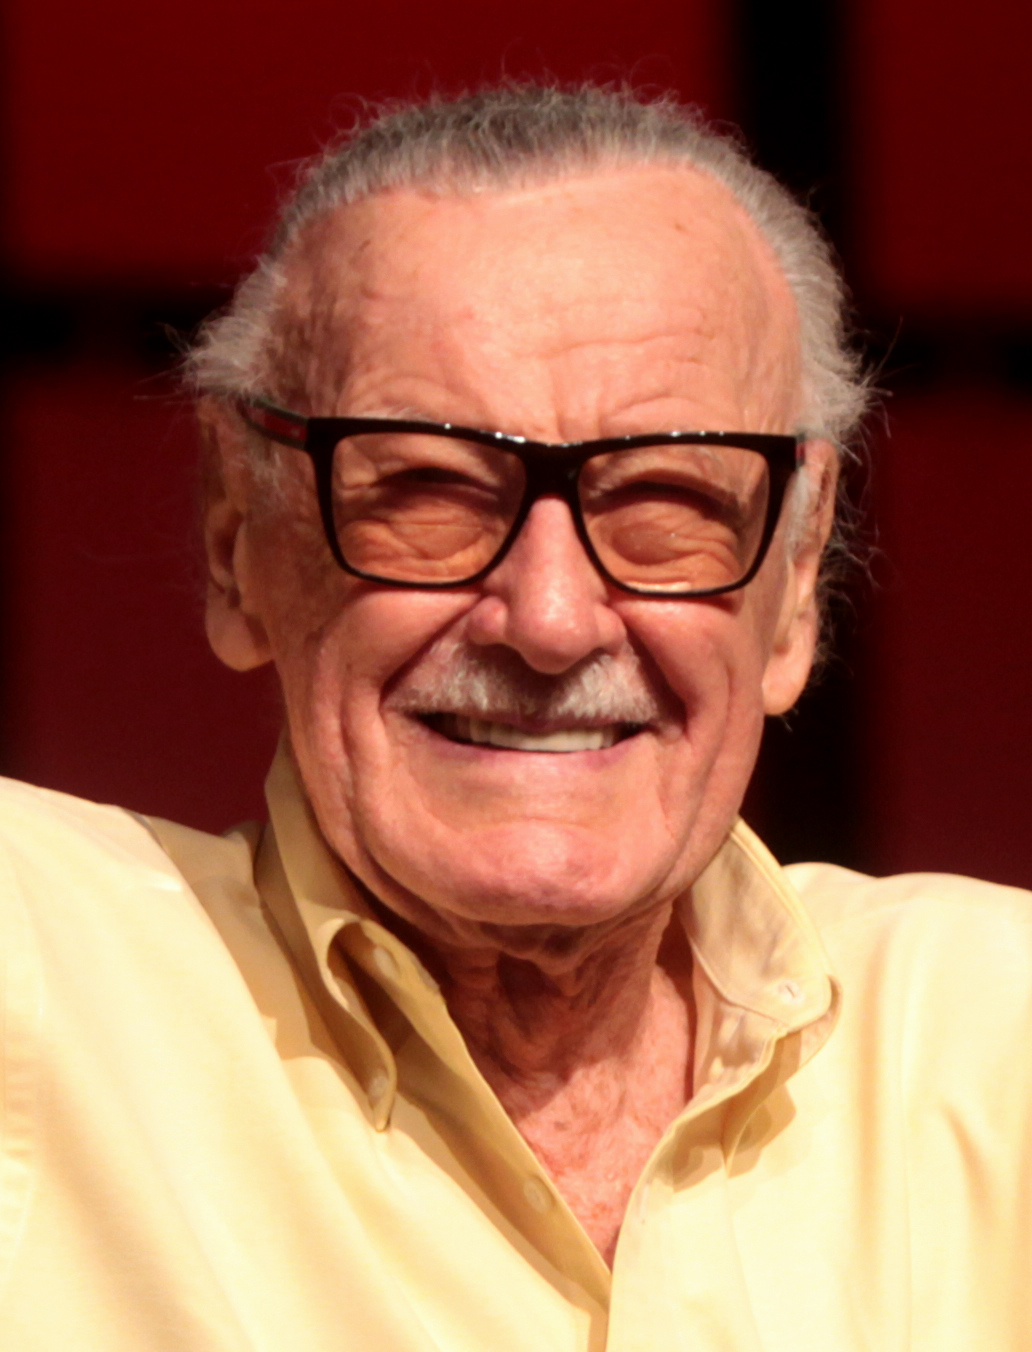 The 95-year old son of father (?) and mother(?) Stan Lee in 2018 photo. Stan Lee earned a  million dollar salary - leaving the net worth at 50 million in 2018